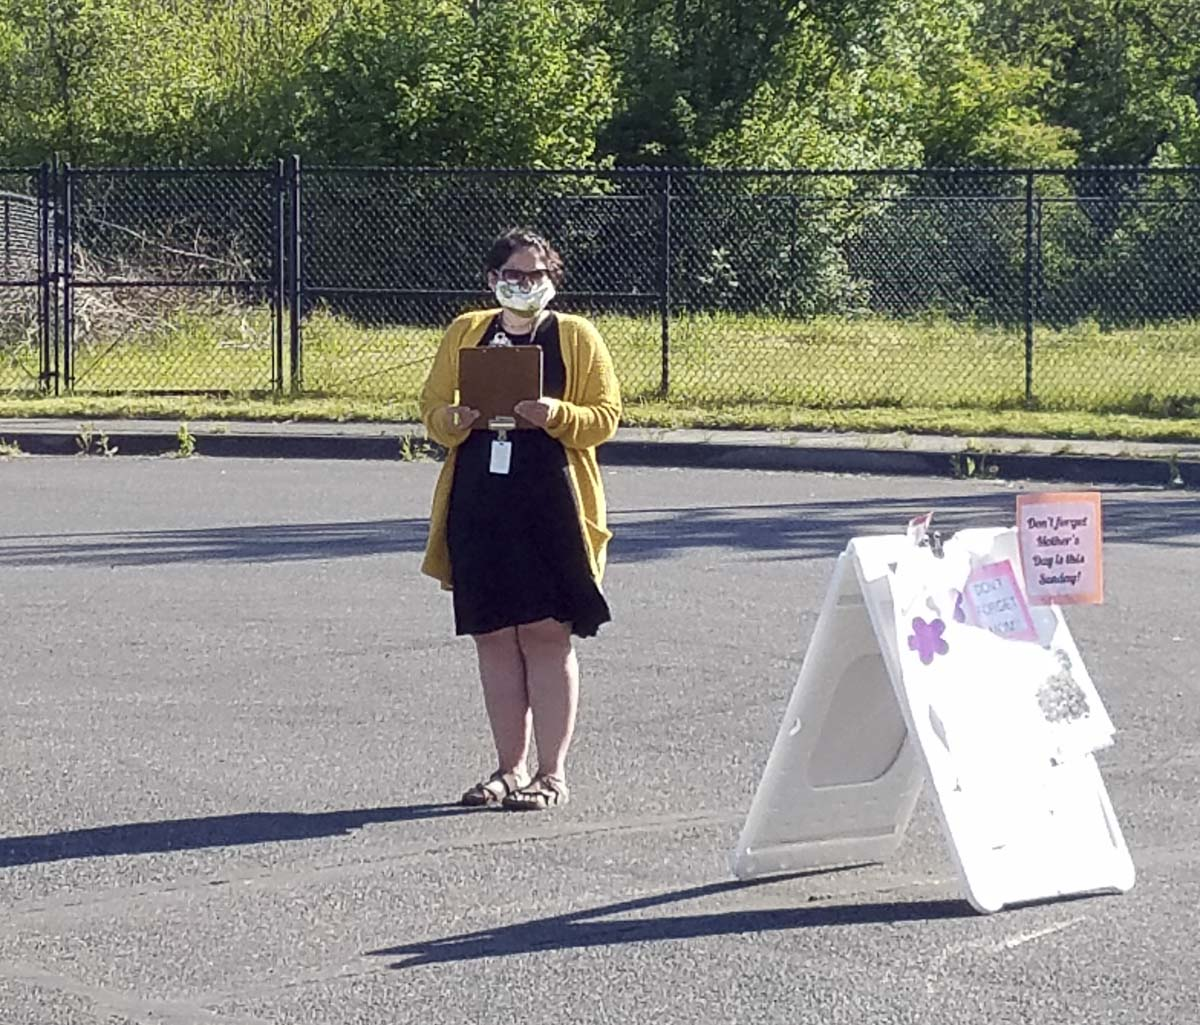 Nearly two dozen district employees helped make the plant sale happen like Stacy Gould pictured here wearing a mask while she checked in customers. Photo courtesy of Woodland Public Schools